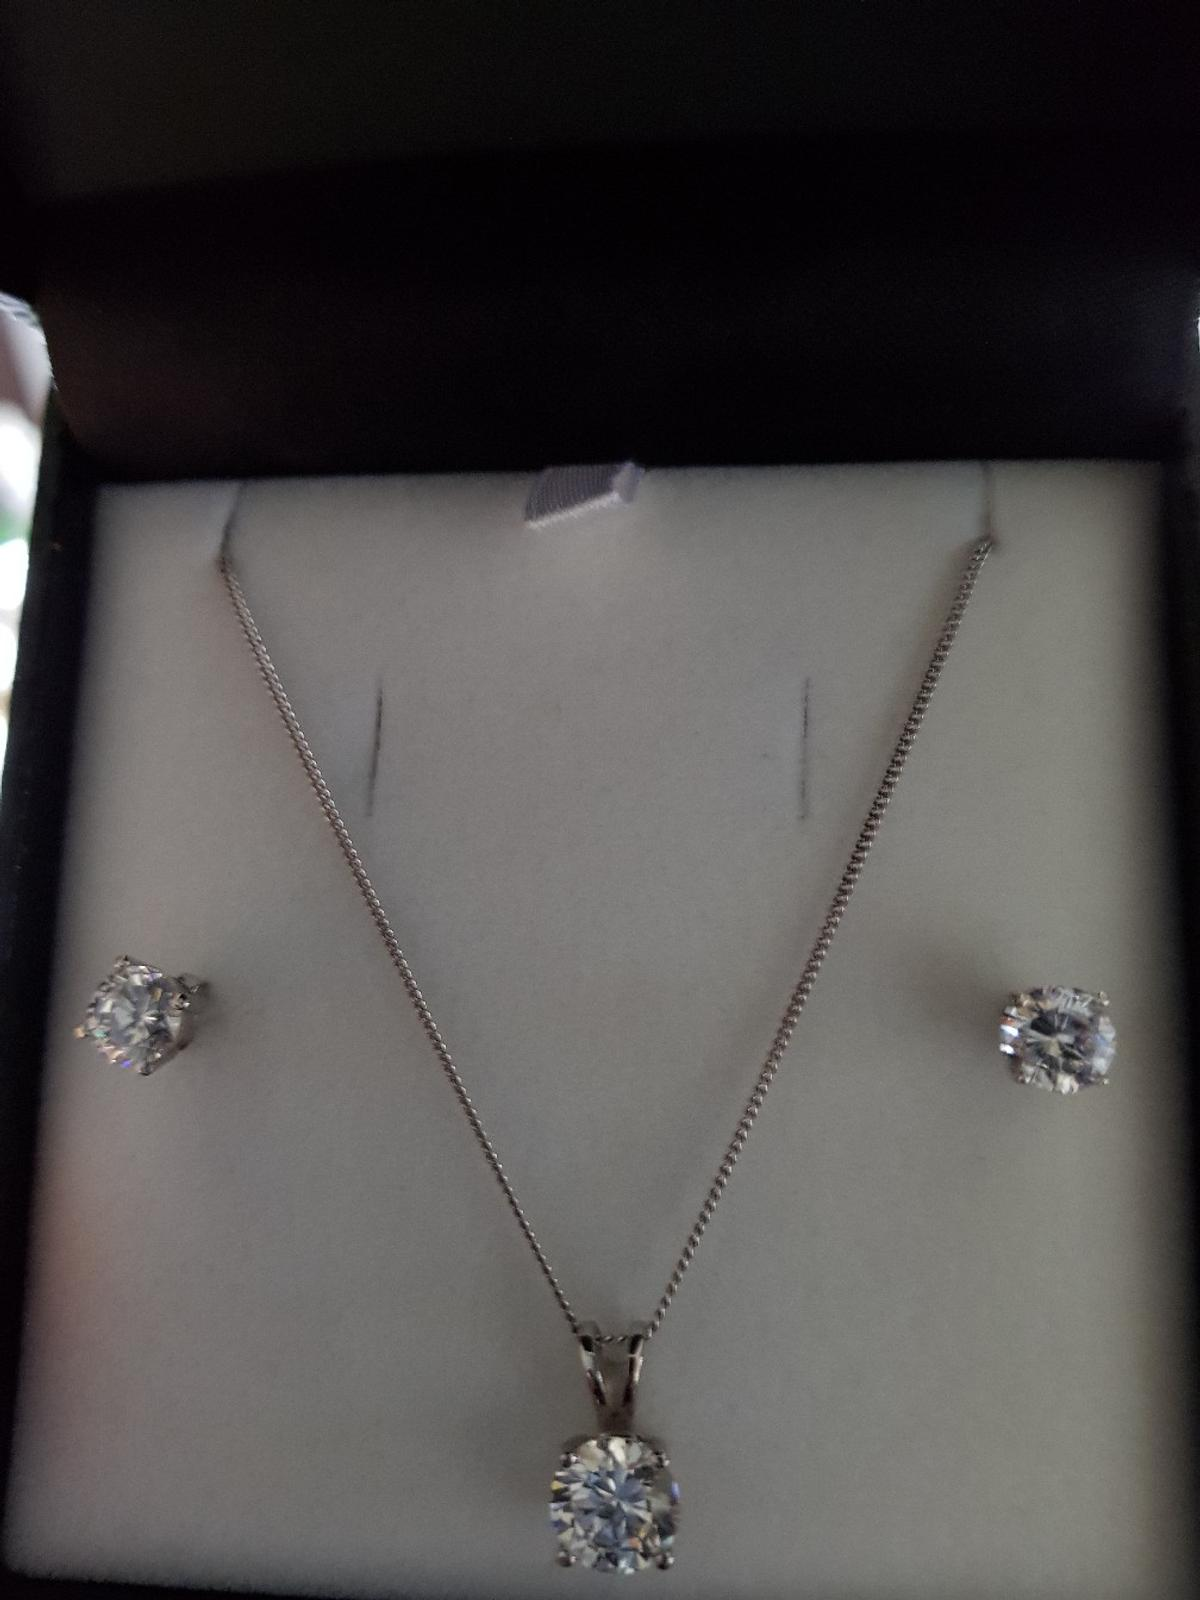 821a8c16b Warren James Silver Necklace And Earrings Sets - Image Of Earring